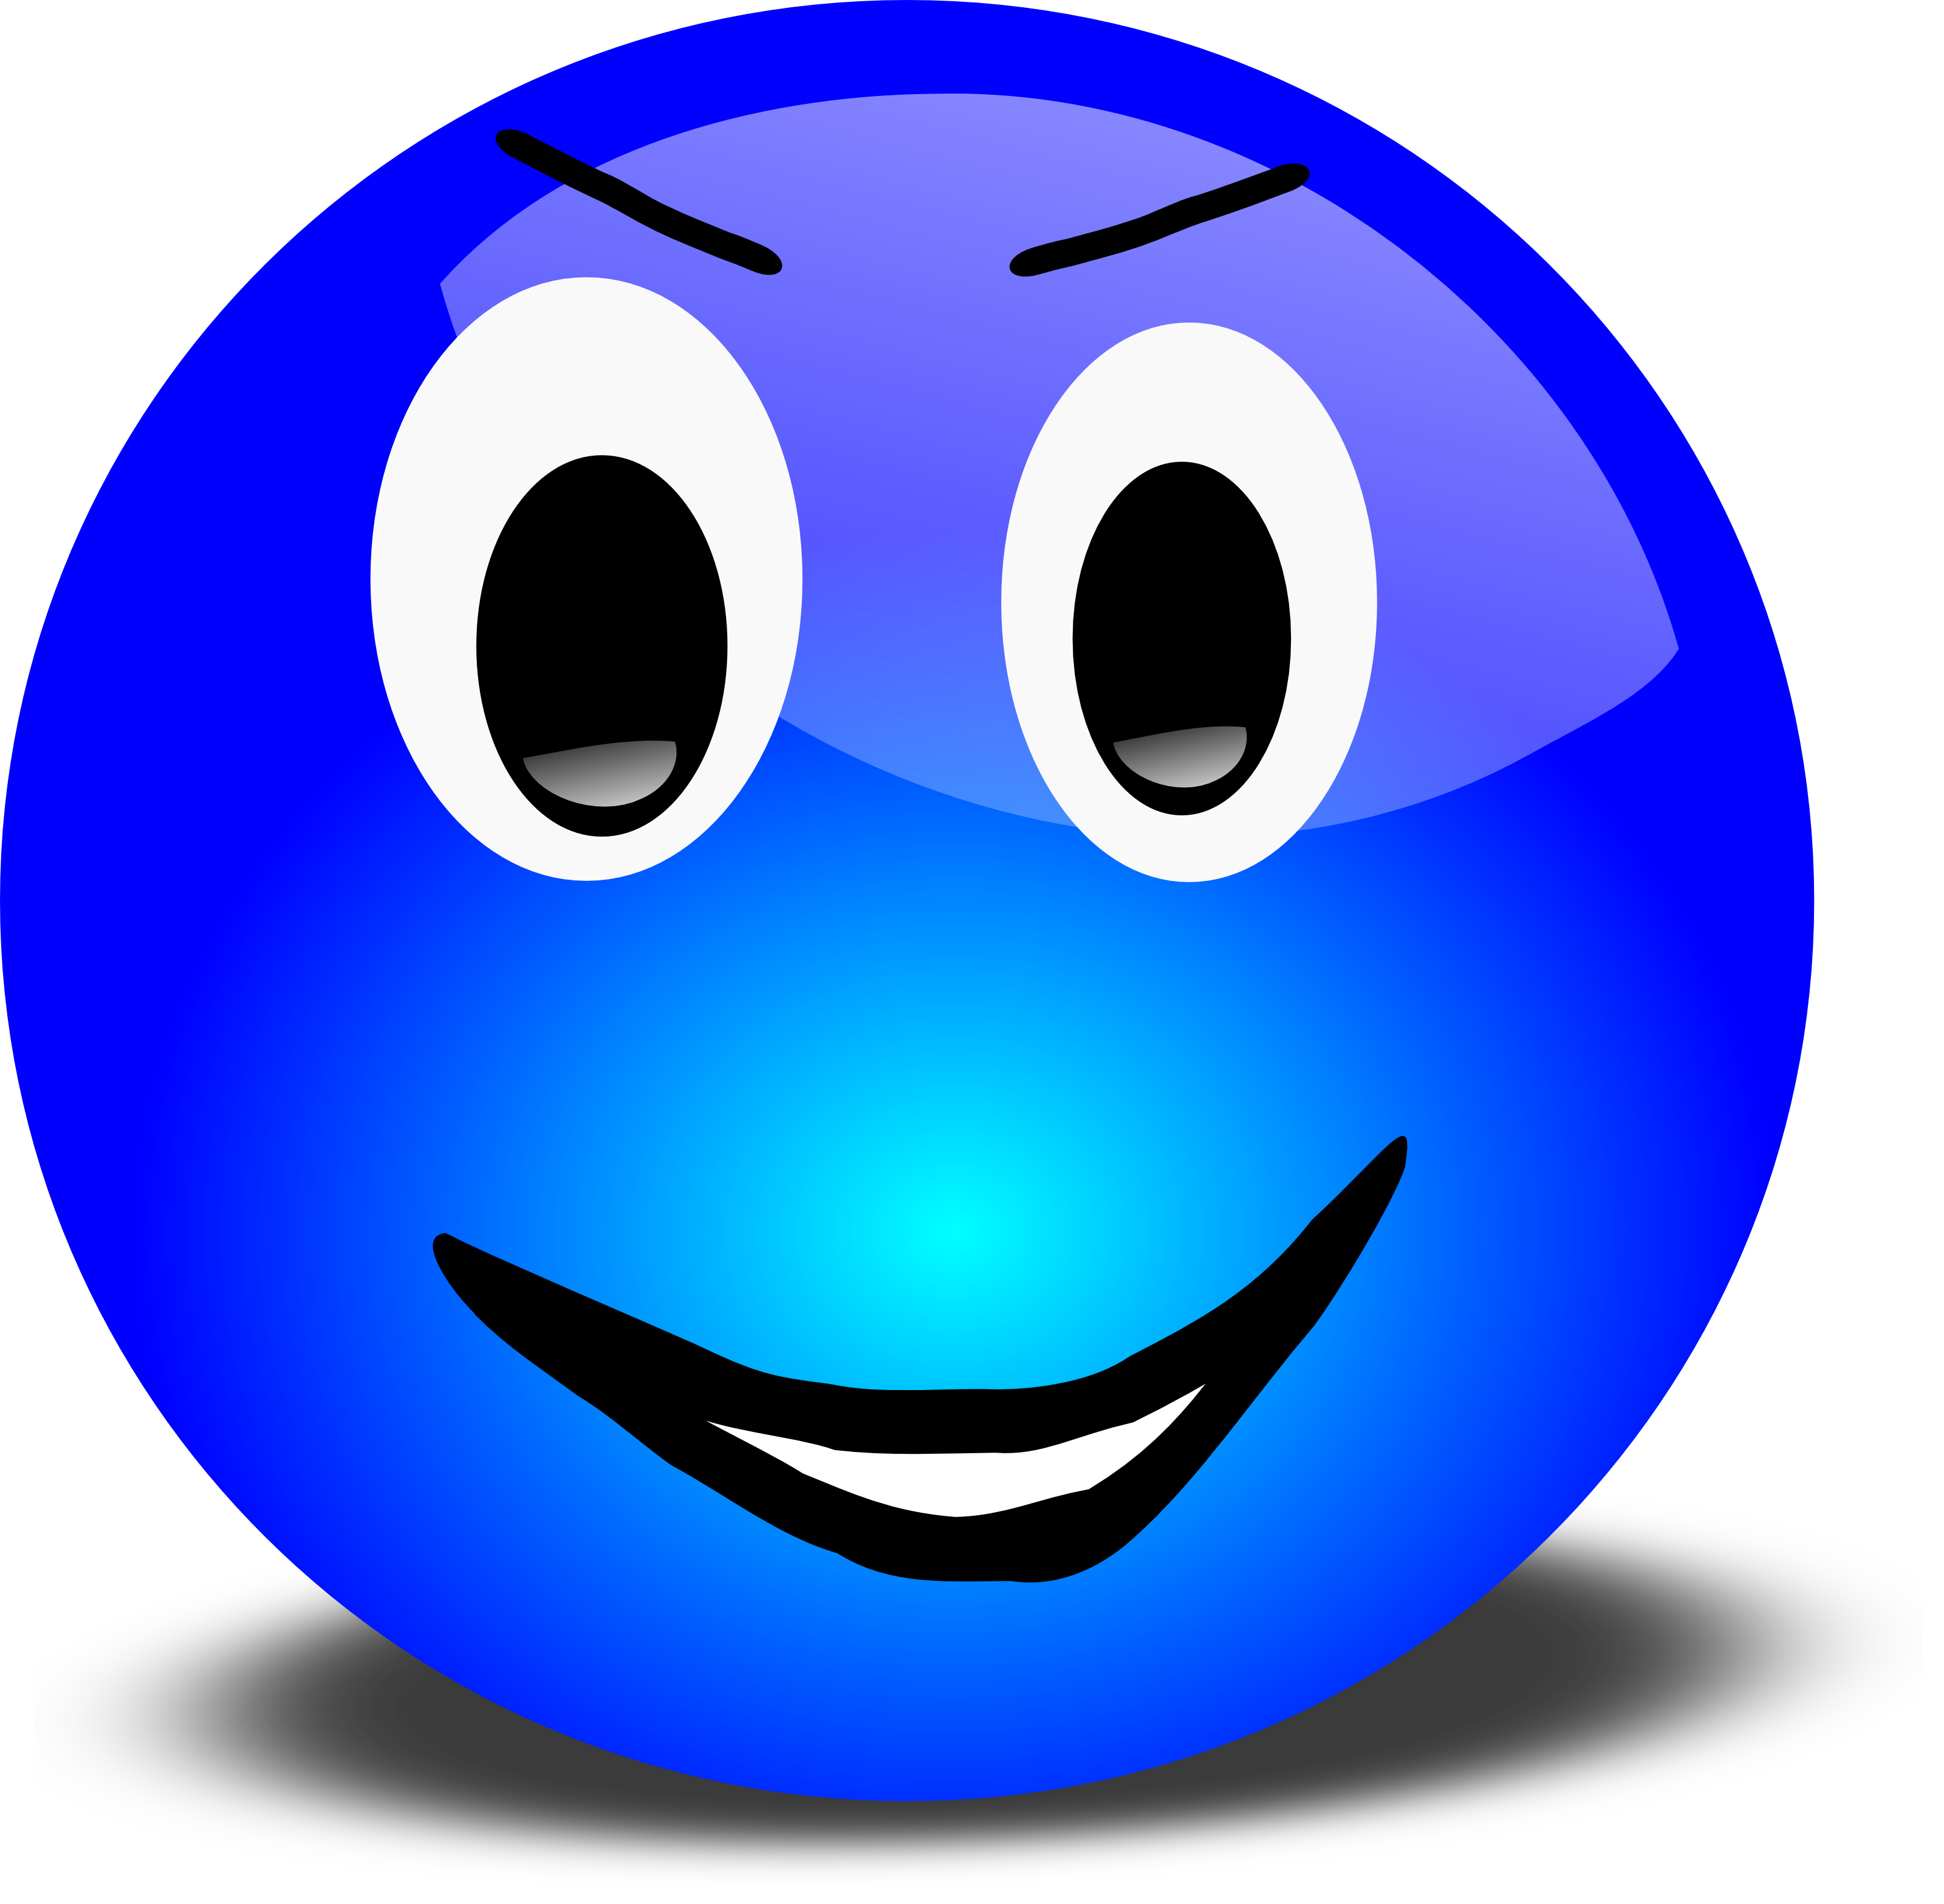 83 Free 3d Grinning Blue Smiley Face Clipart Illustration besides 6TyXy6XTn furthermore 148871 besides Buffoon Clipart additionally An Angry Pile Of Poo. on mad mouth clip art